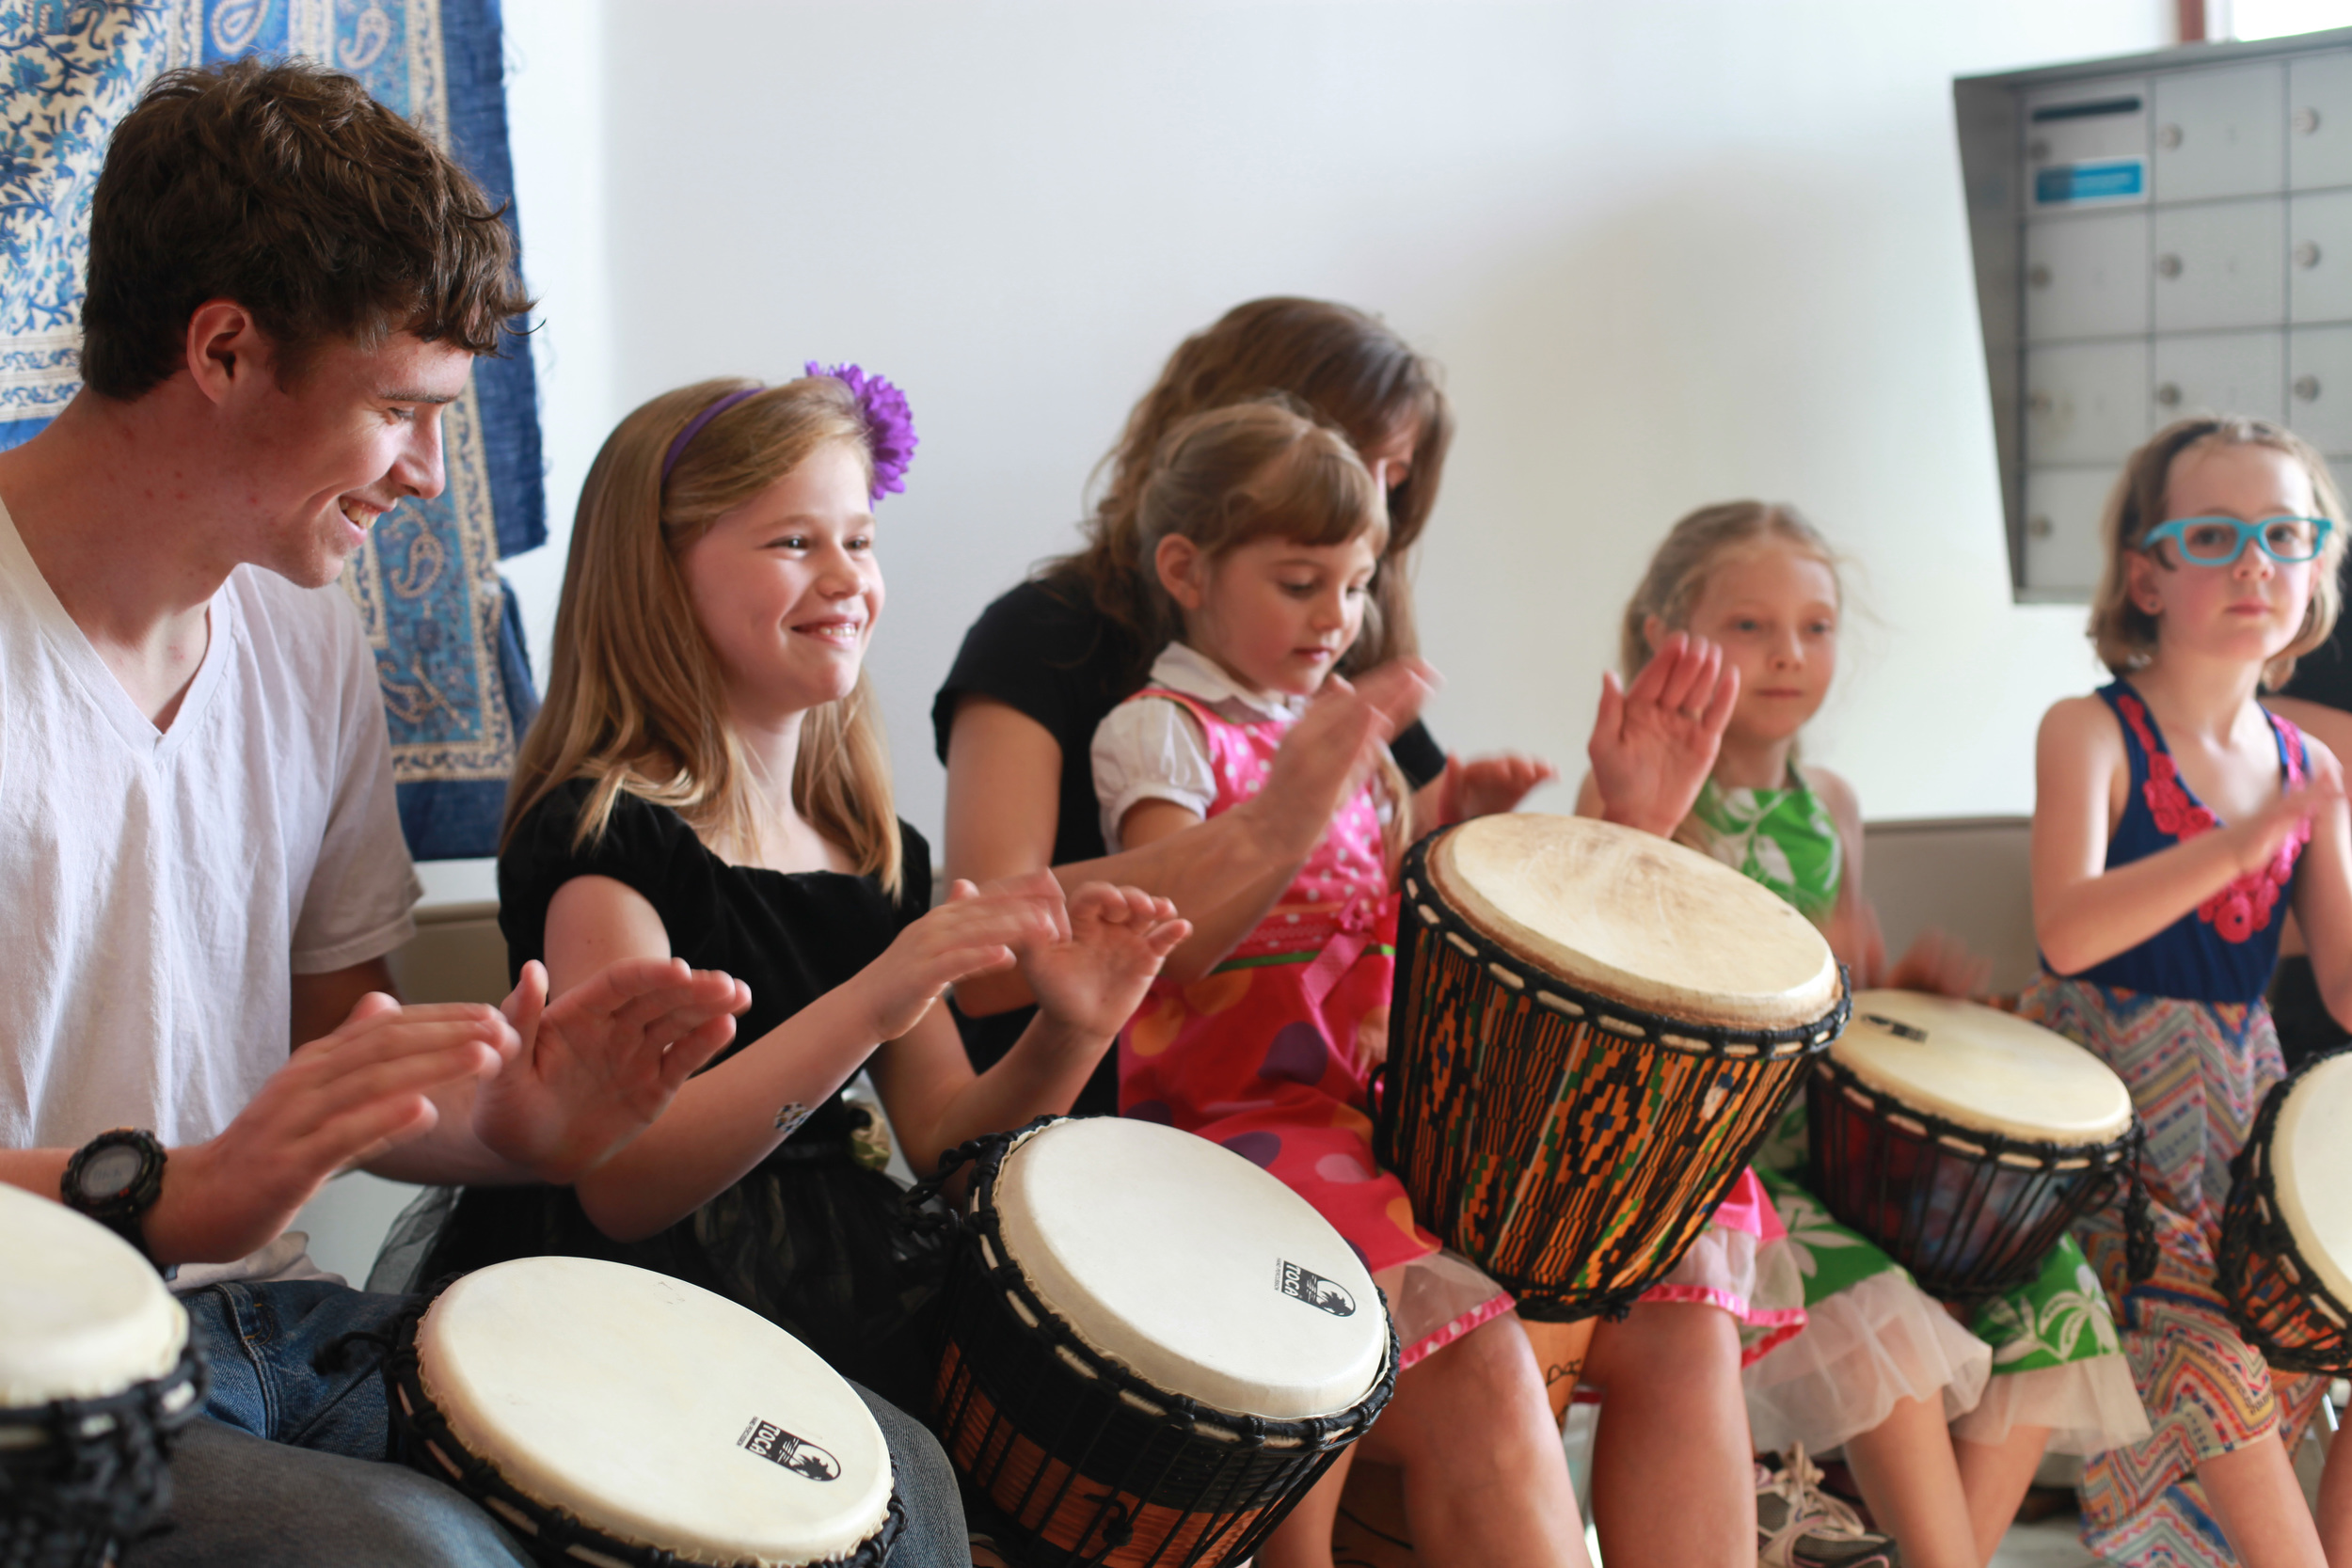 We collaborate with local area schools and organizations to provide high quality music education to the community.